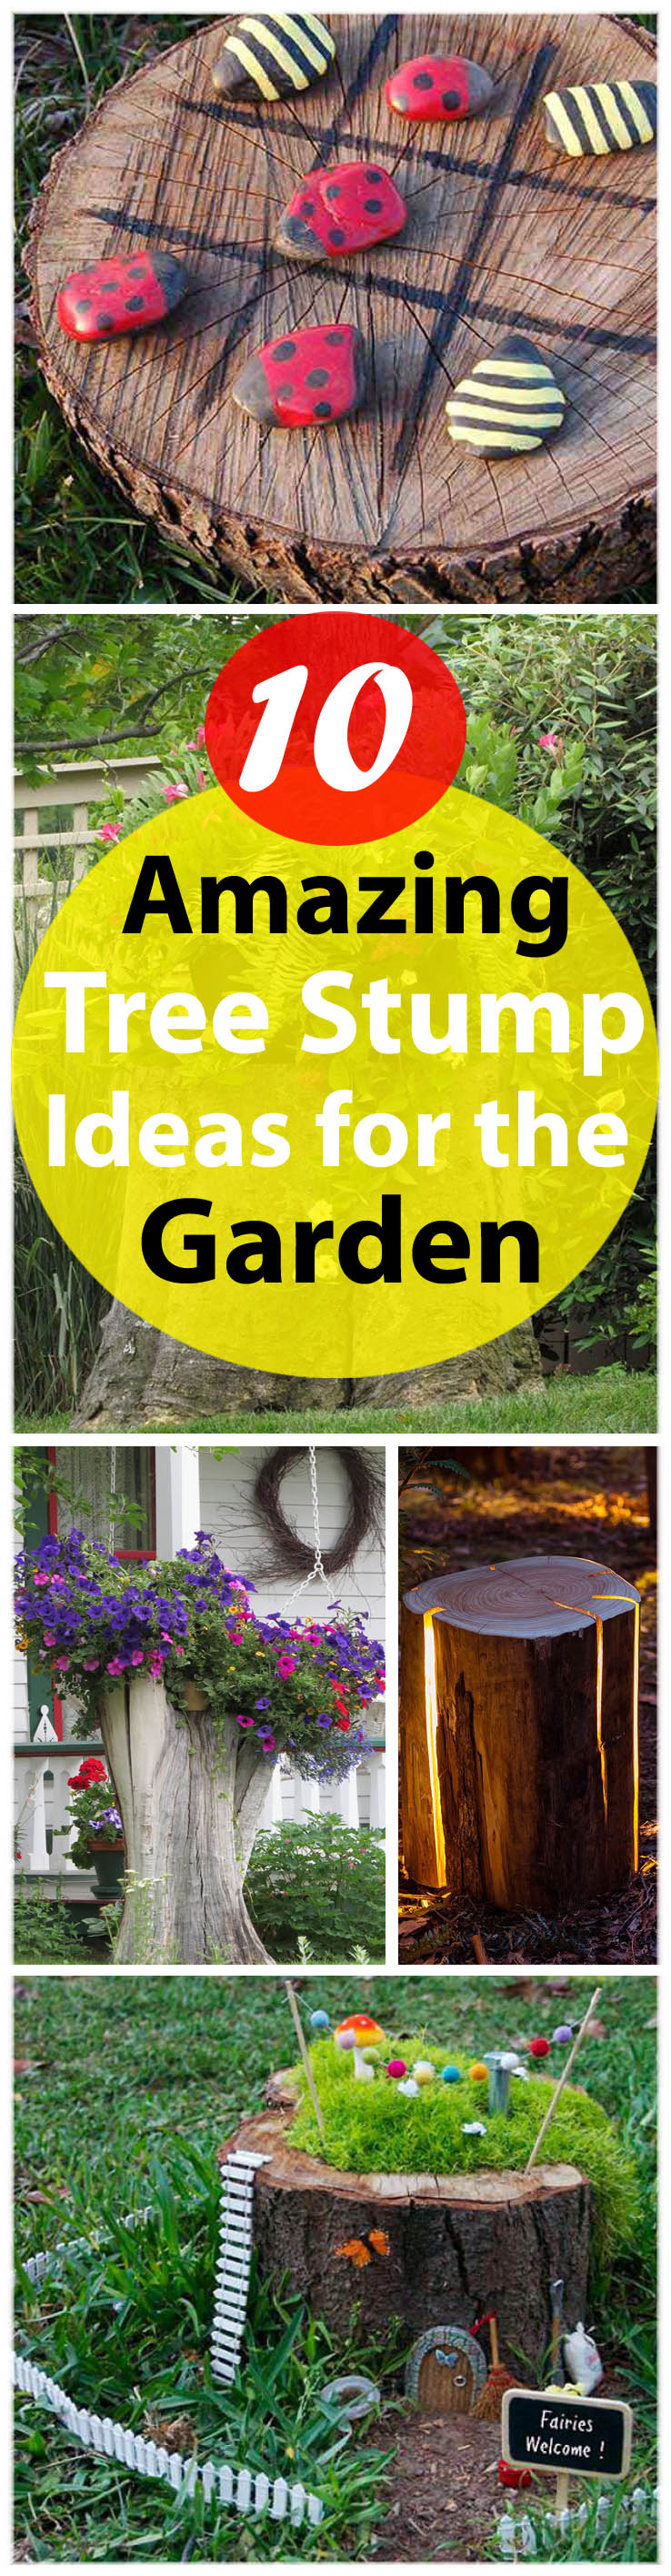 tree stump ideeas for garden